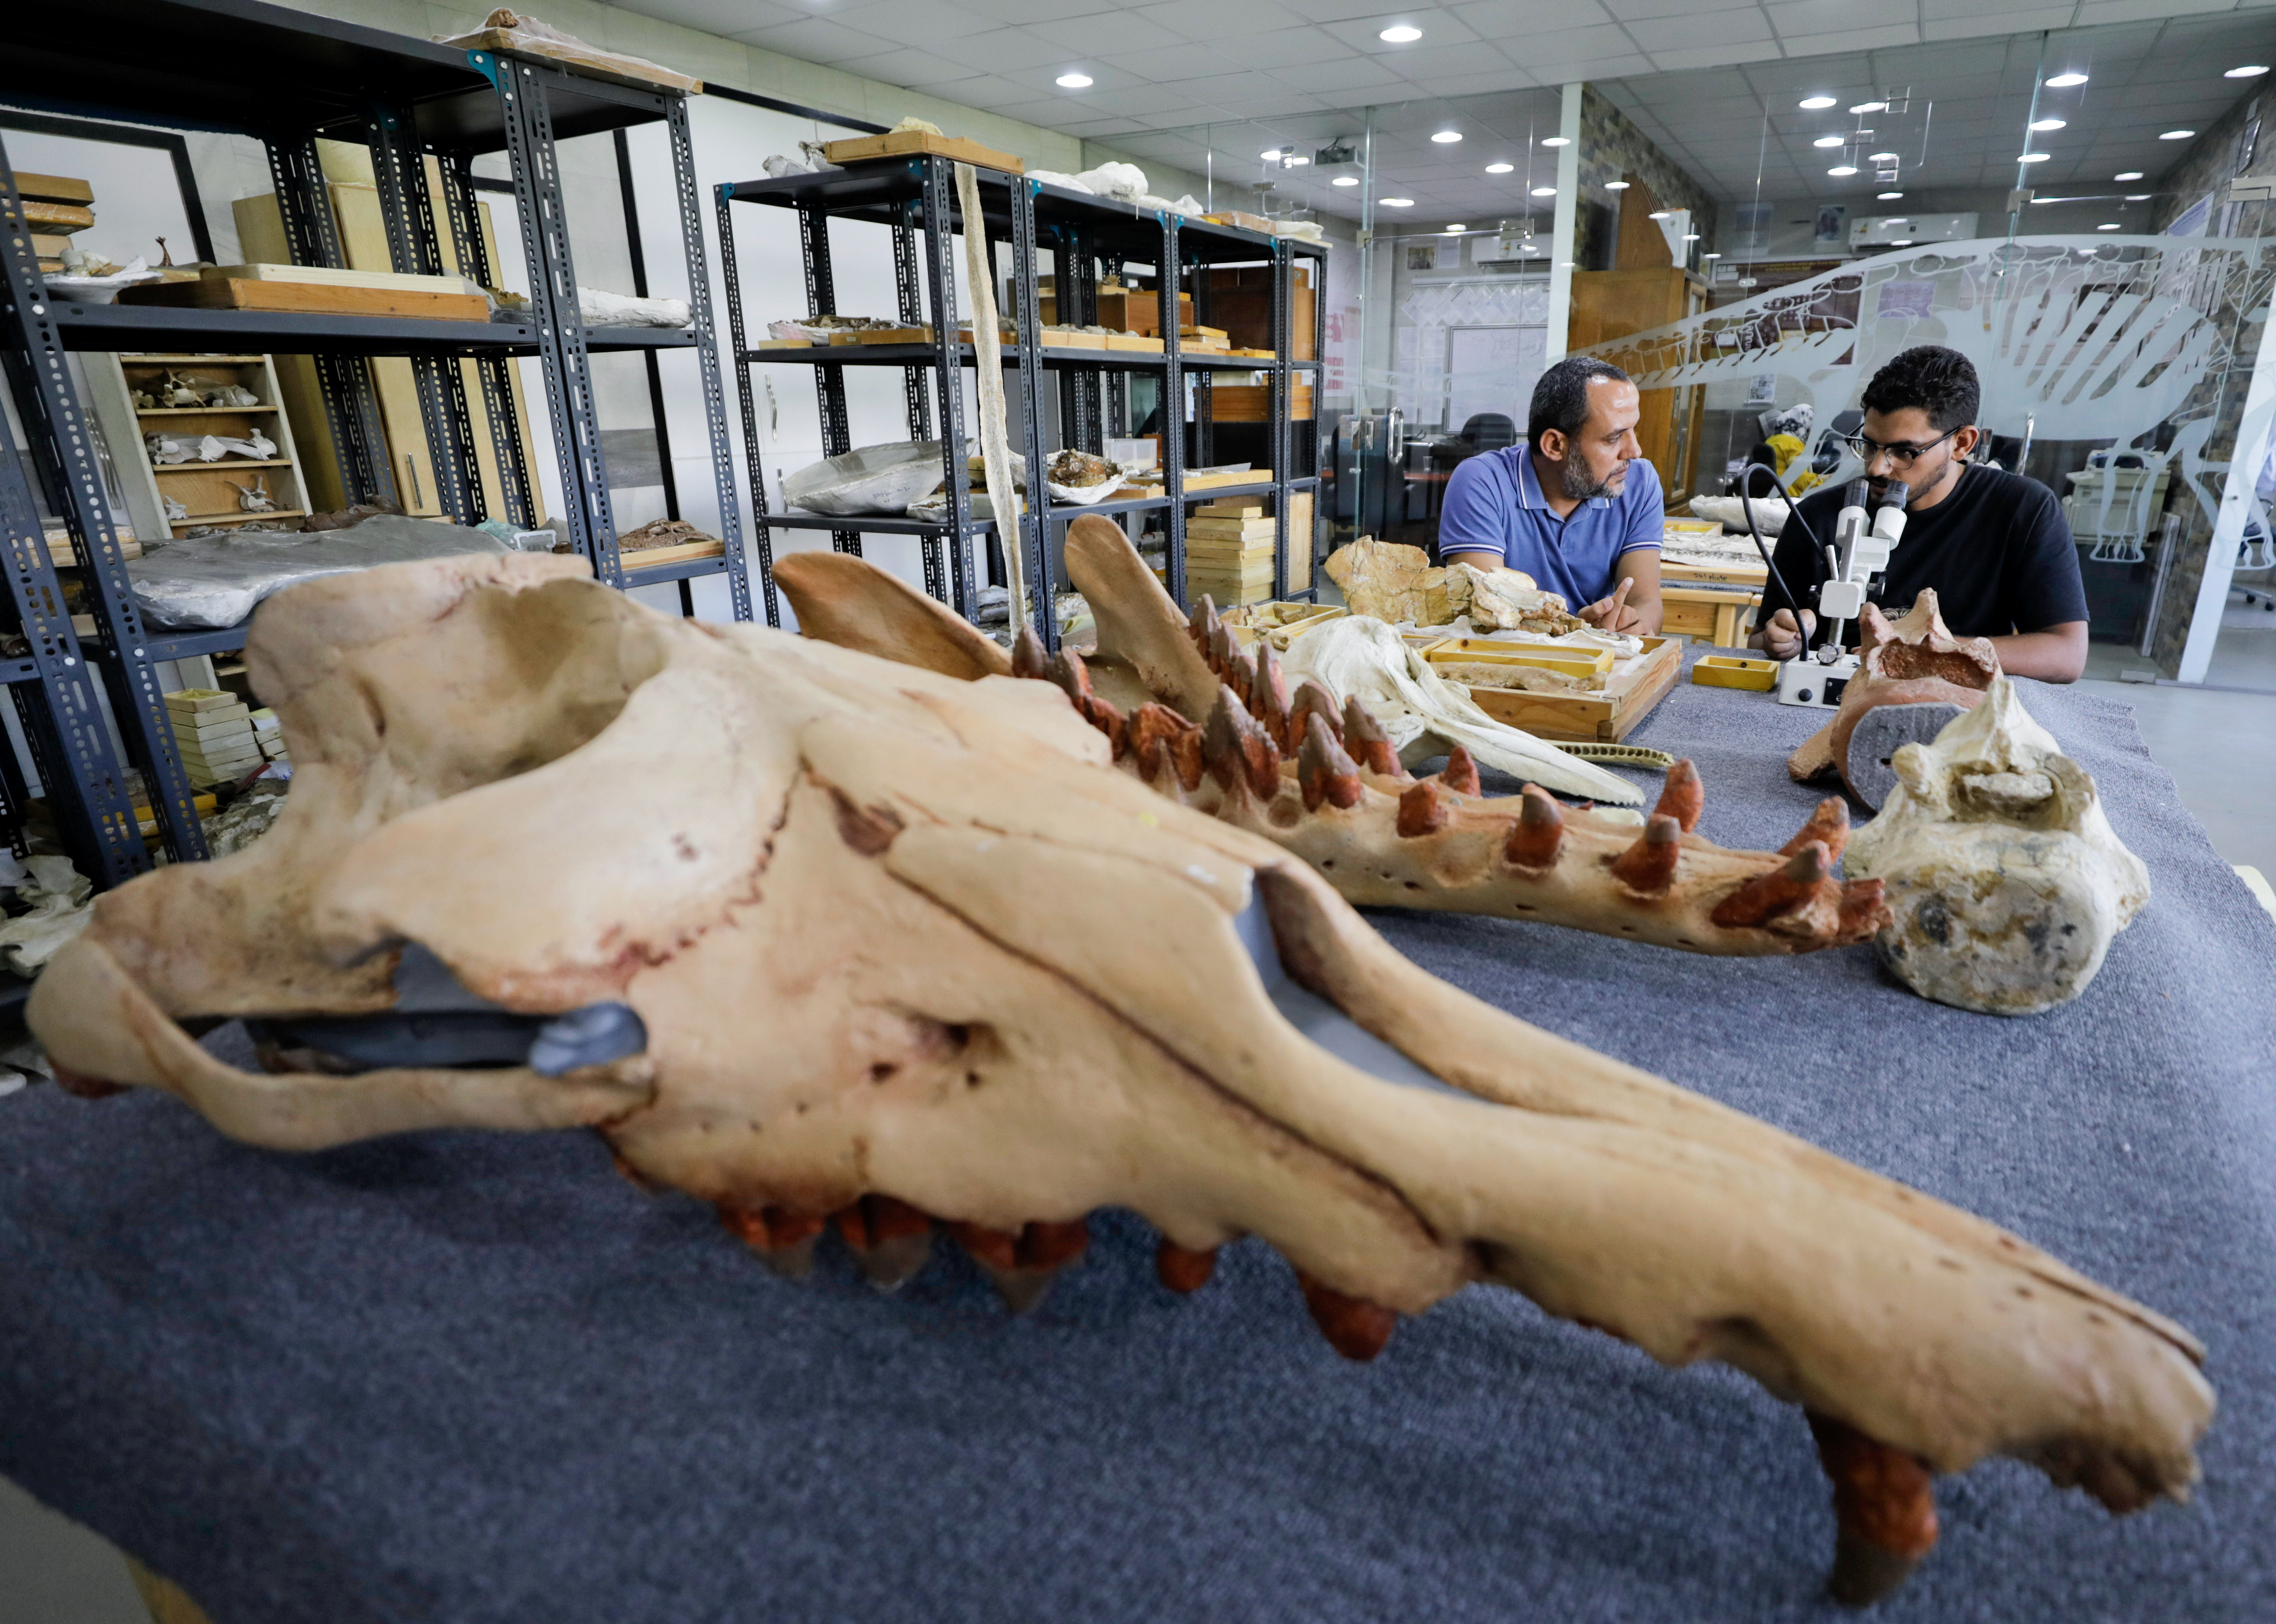 """Abdullah Gohar, a researcher at El Mansoura university, works on renovating the 43 million-year-old fossil of a previously unknown amphibious four-legged whale species called """"Phiomicetus anubis"""" that helps trace the transition of whales from land to sea, discovered in the Fayum Depression in the Western Desert, near the town of El Mansoura, north of Cairo, Egypt, August 26, 2021. REUTERS/Mohamed Abd El Ghany - RC22DP92LSTS"""